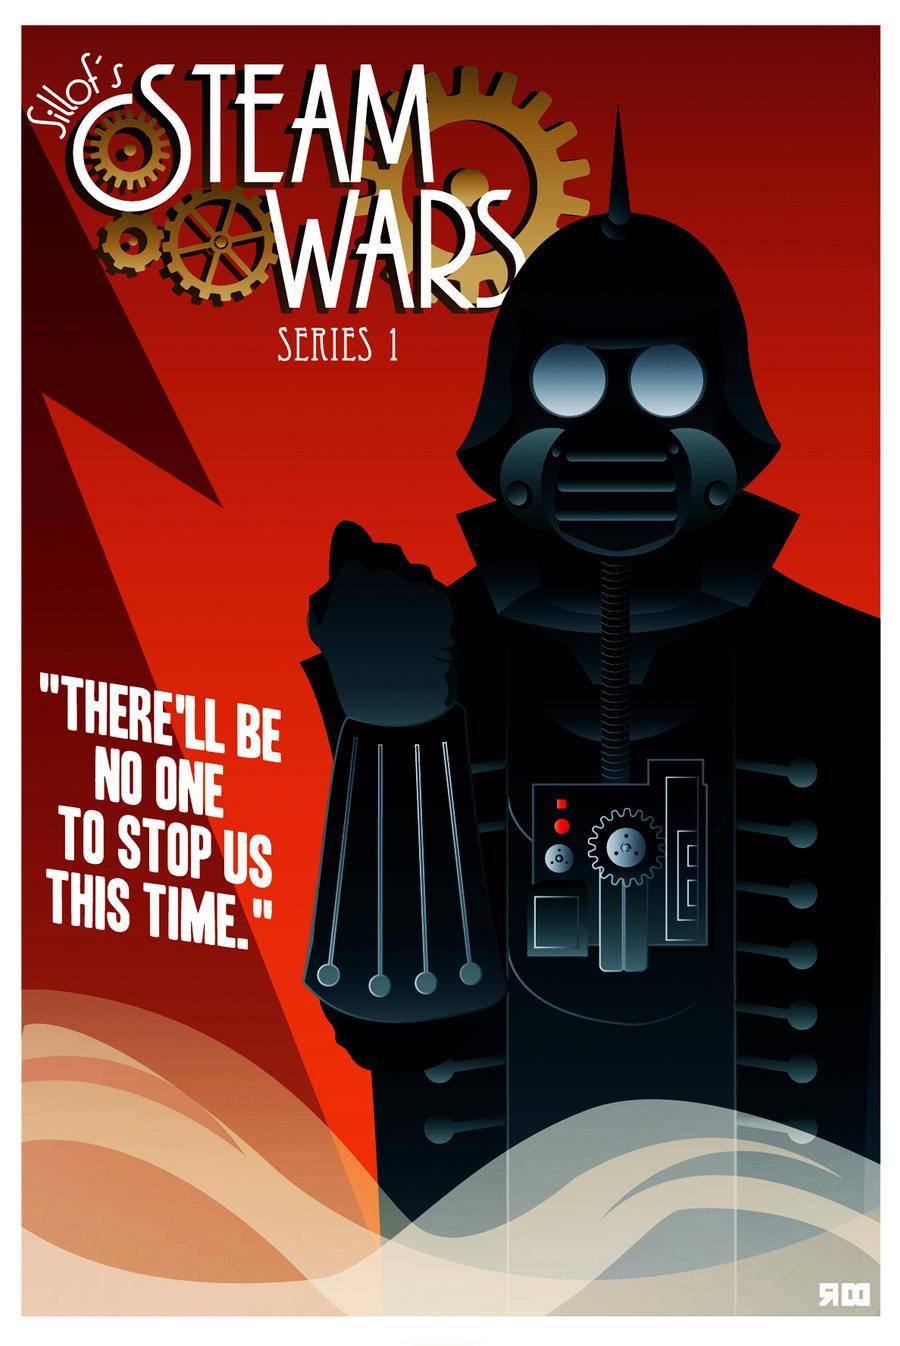 STEAM WARS poster